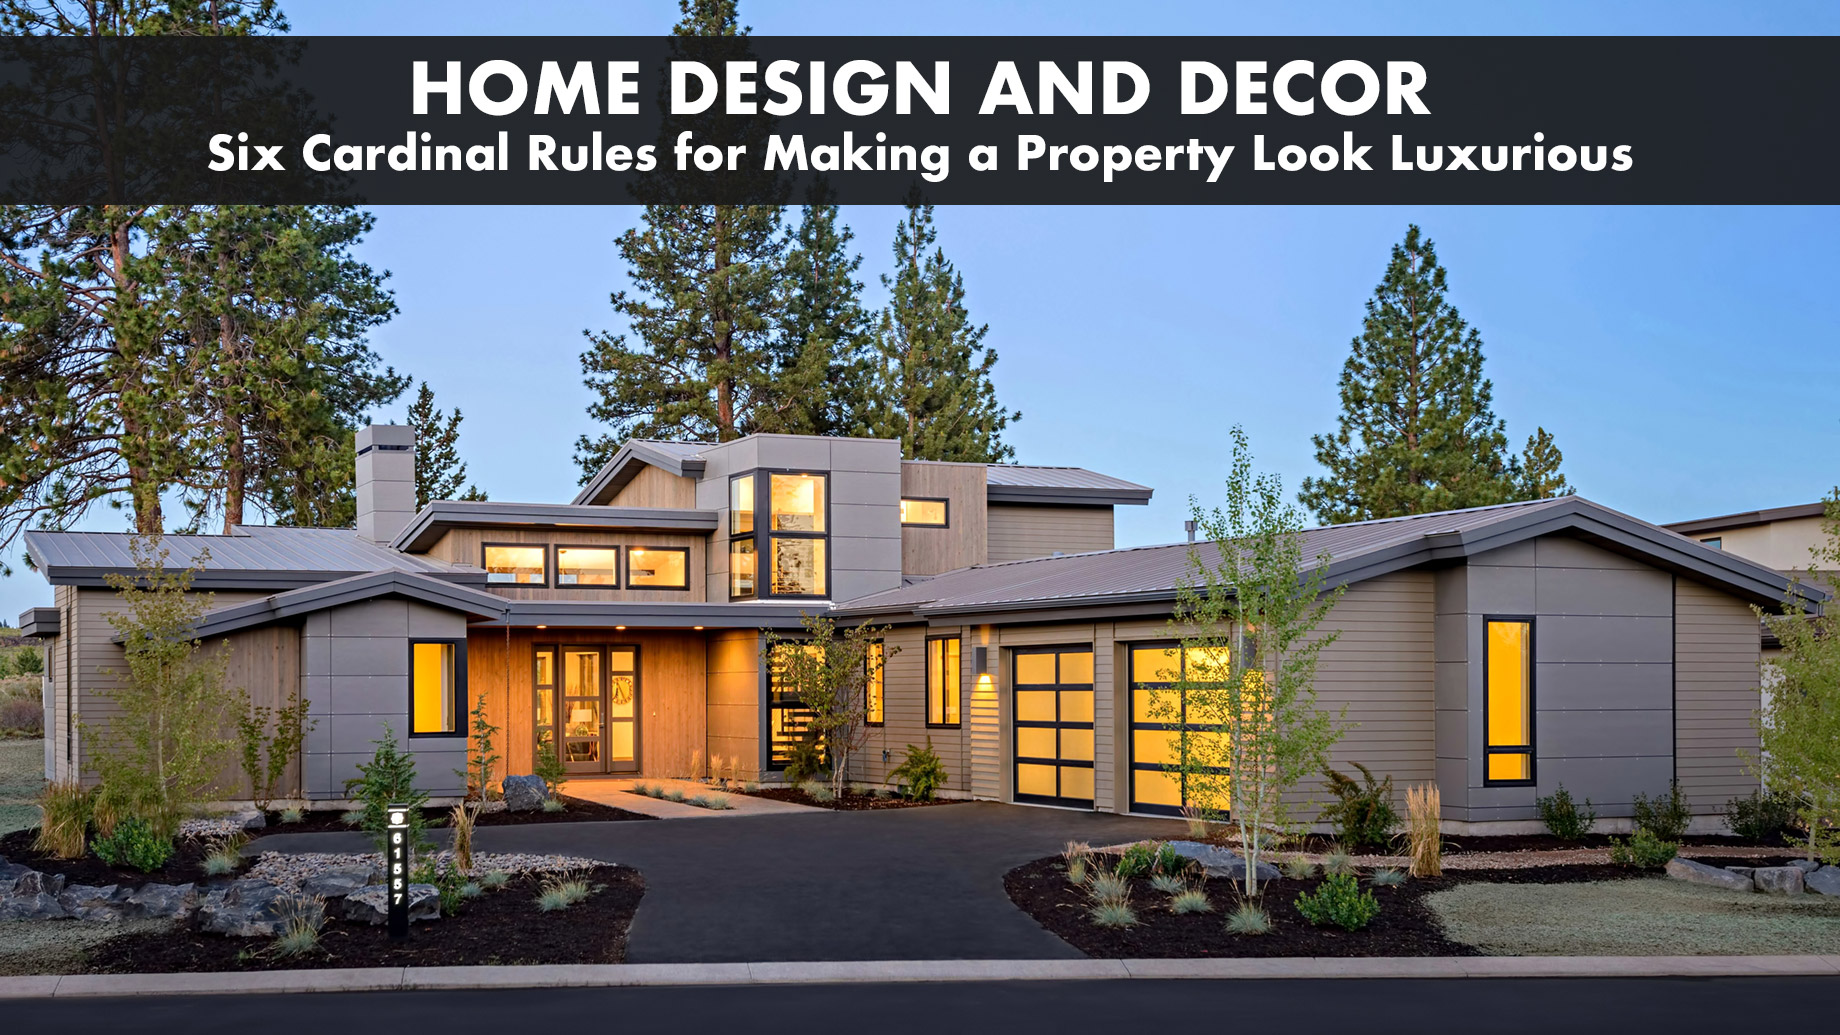 Home Design and Decor - Six Cardinal Rules for Making a Property Look Luxurious